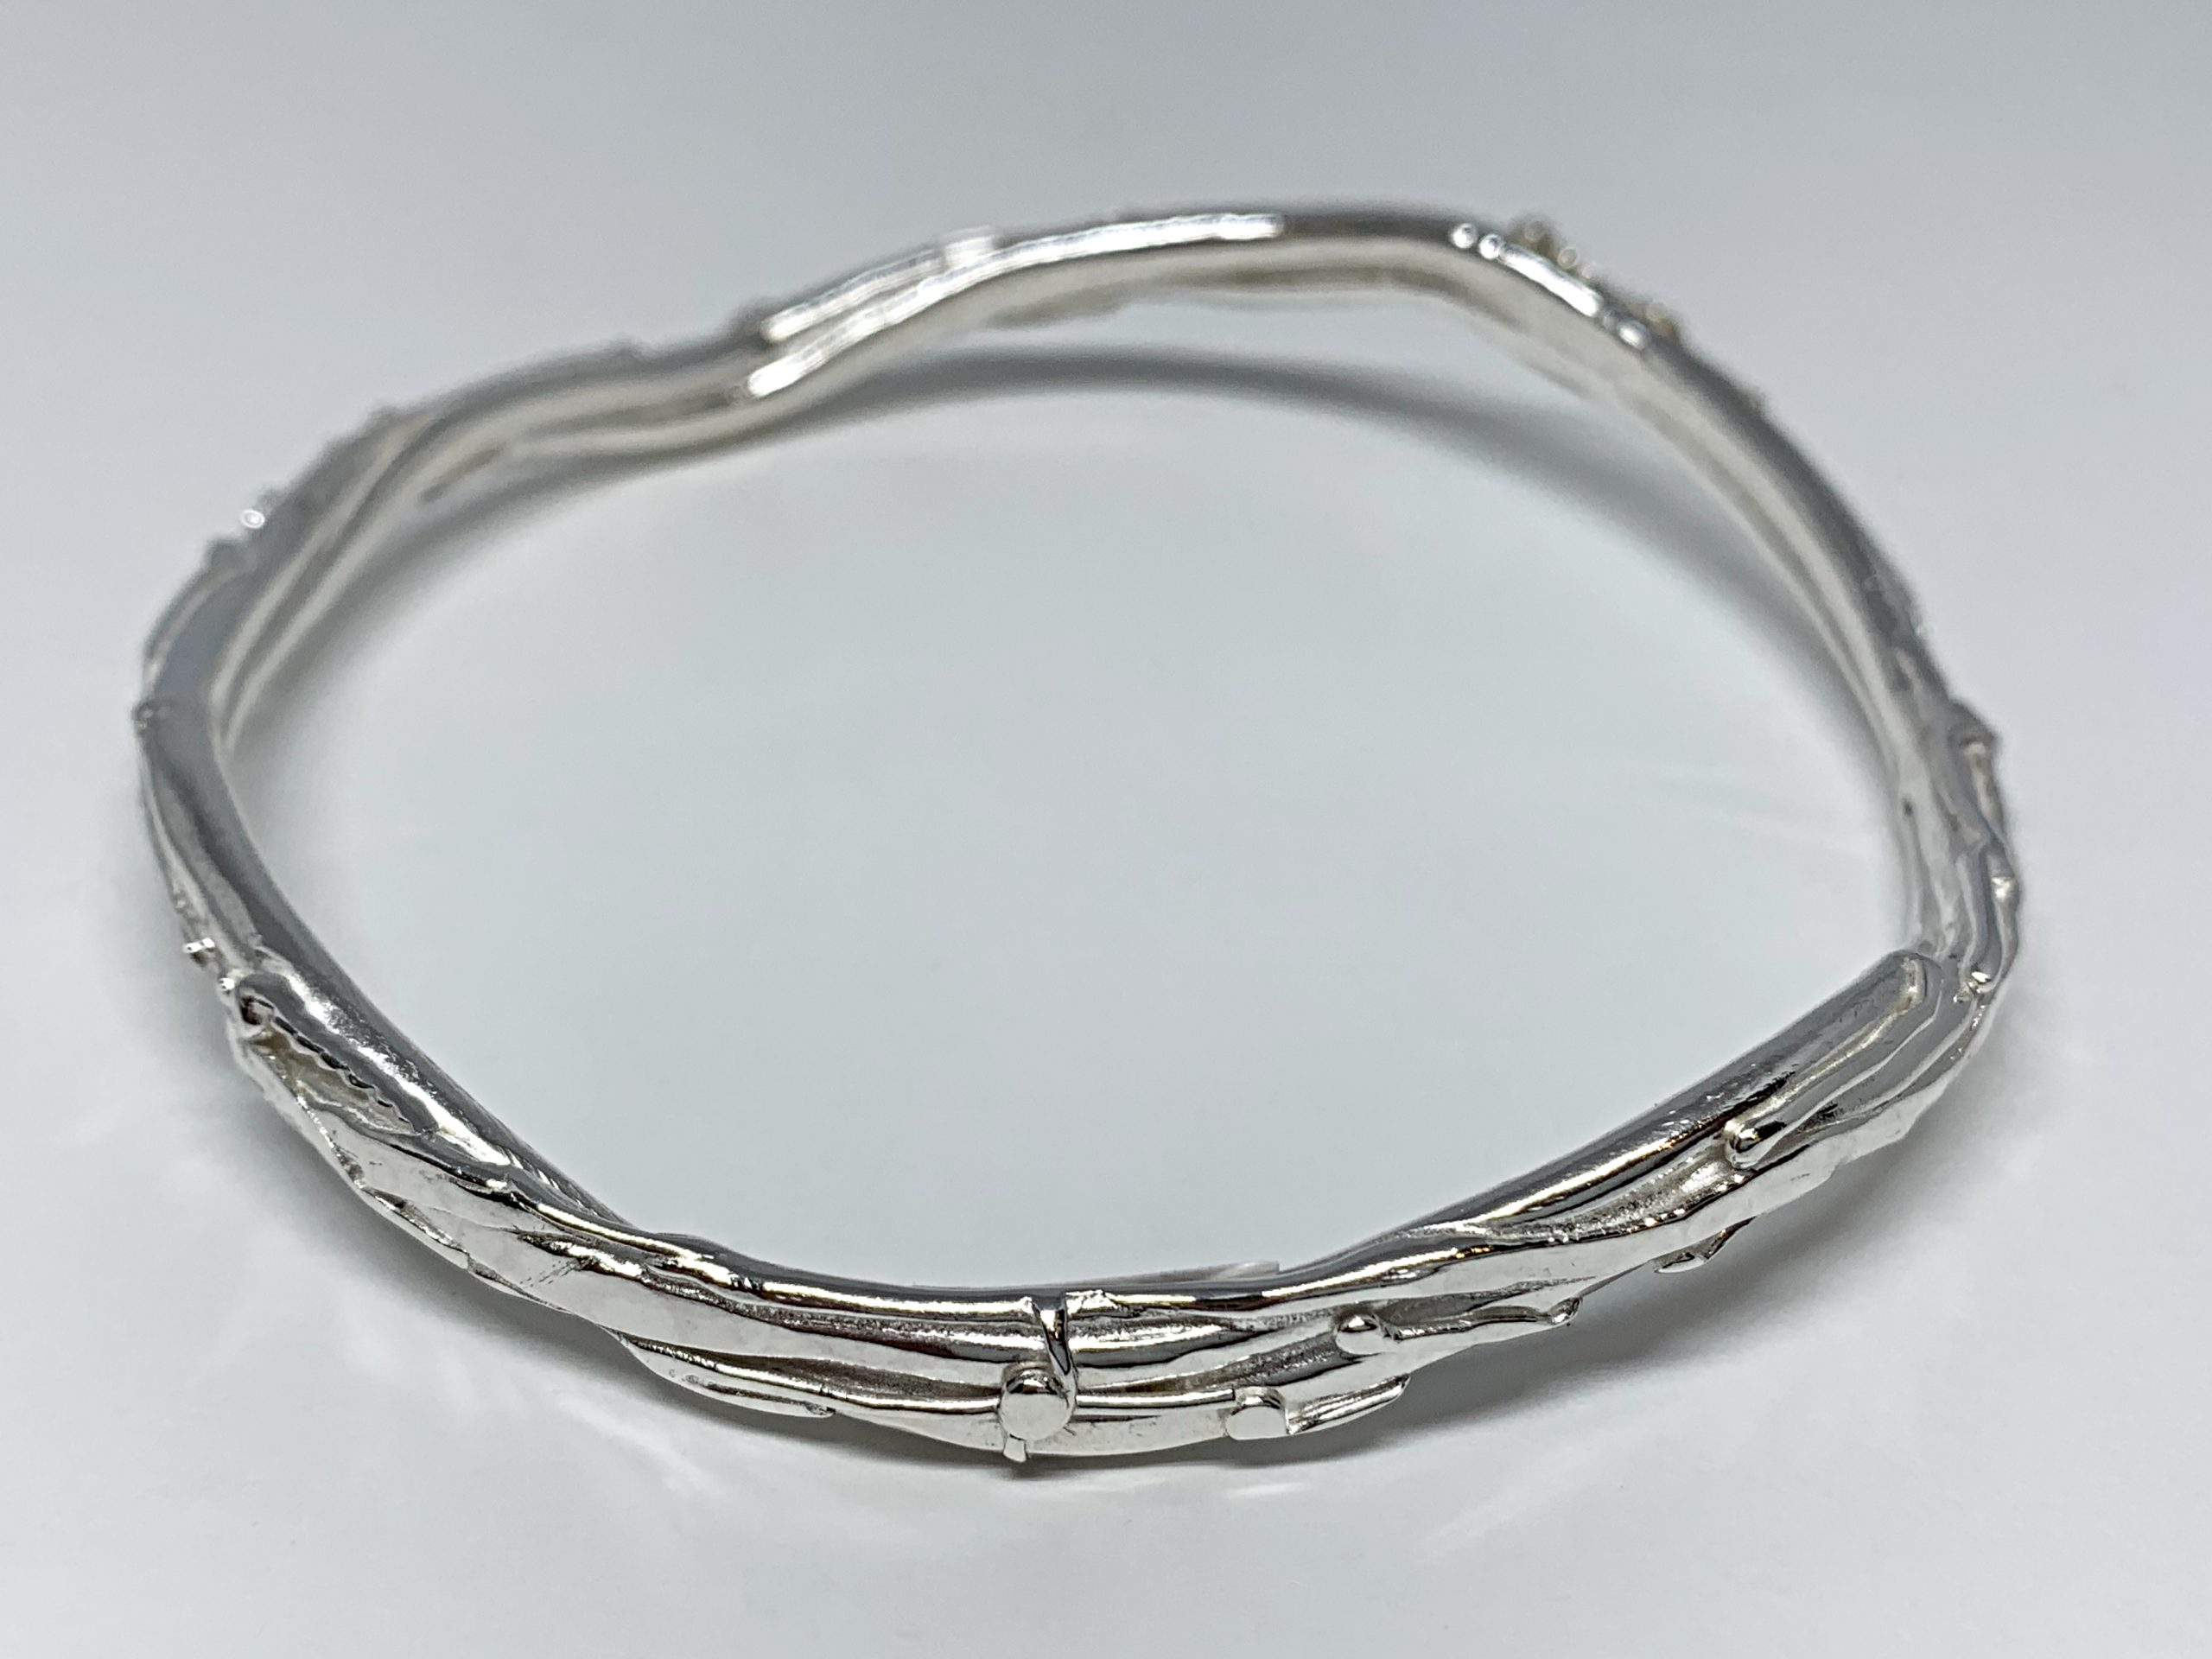 Sterling silver bracelet by A&R Jewellery | Effusion Art Gallery + Cast Glass Studio, Invermere BC